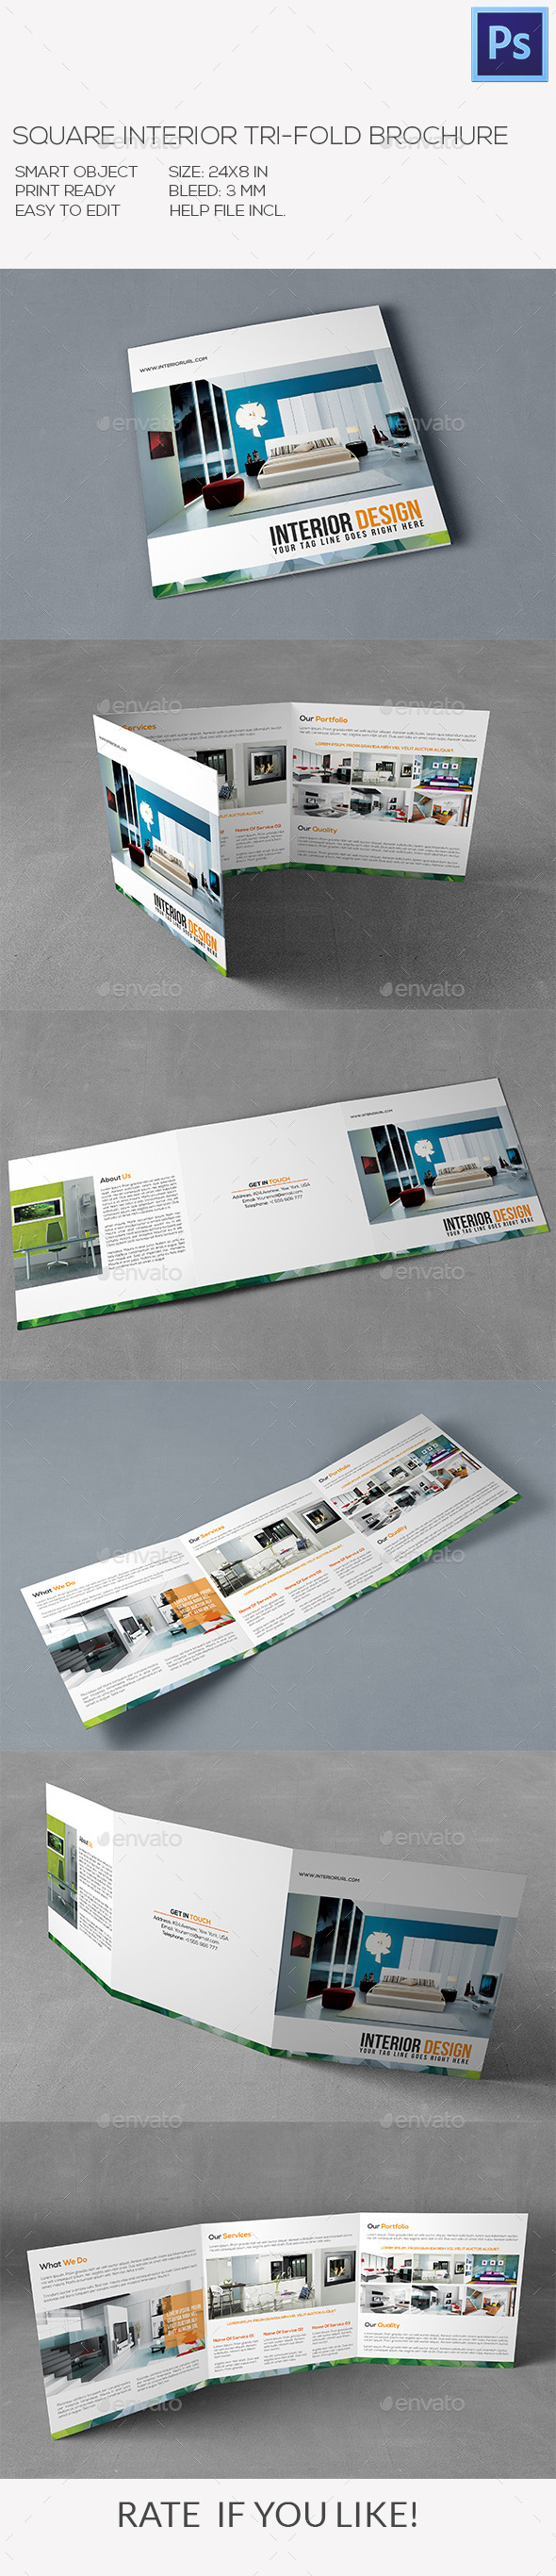 GraphicRiver Square Interior Brochure 10111147